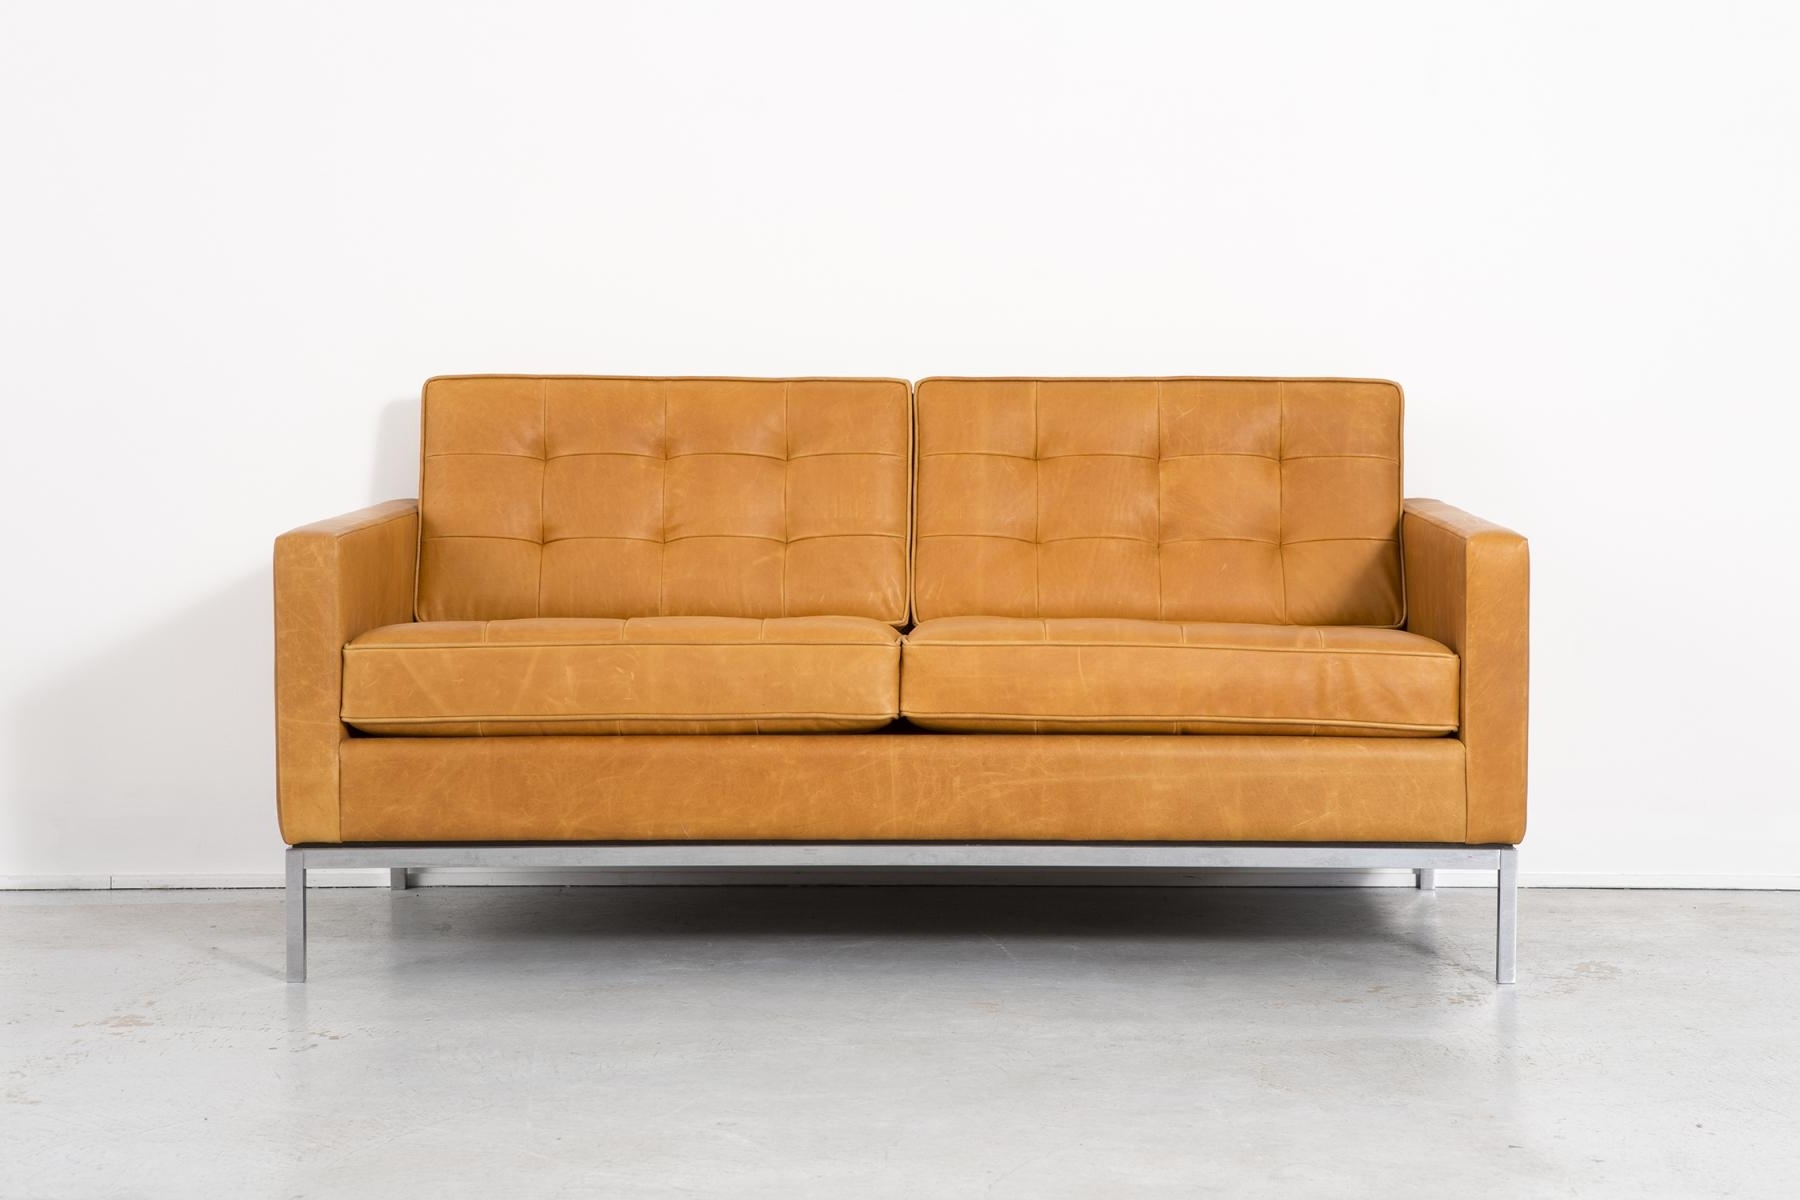 Fashionable Florence Knoll Leather Sofas In Leather Sofaflorence Knoll Bassett For Knoll, 1970S For Sale (View 2 of 15)